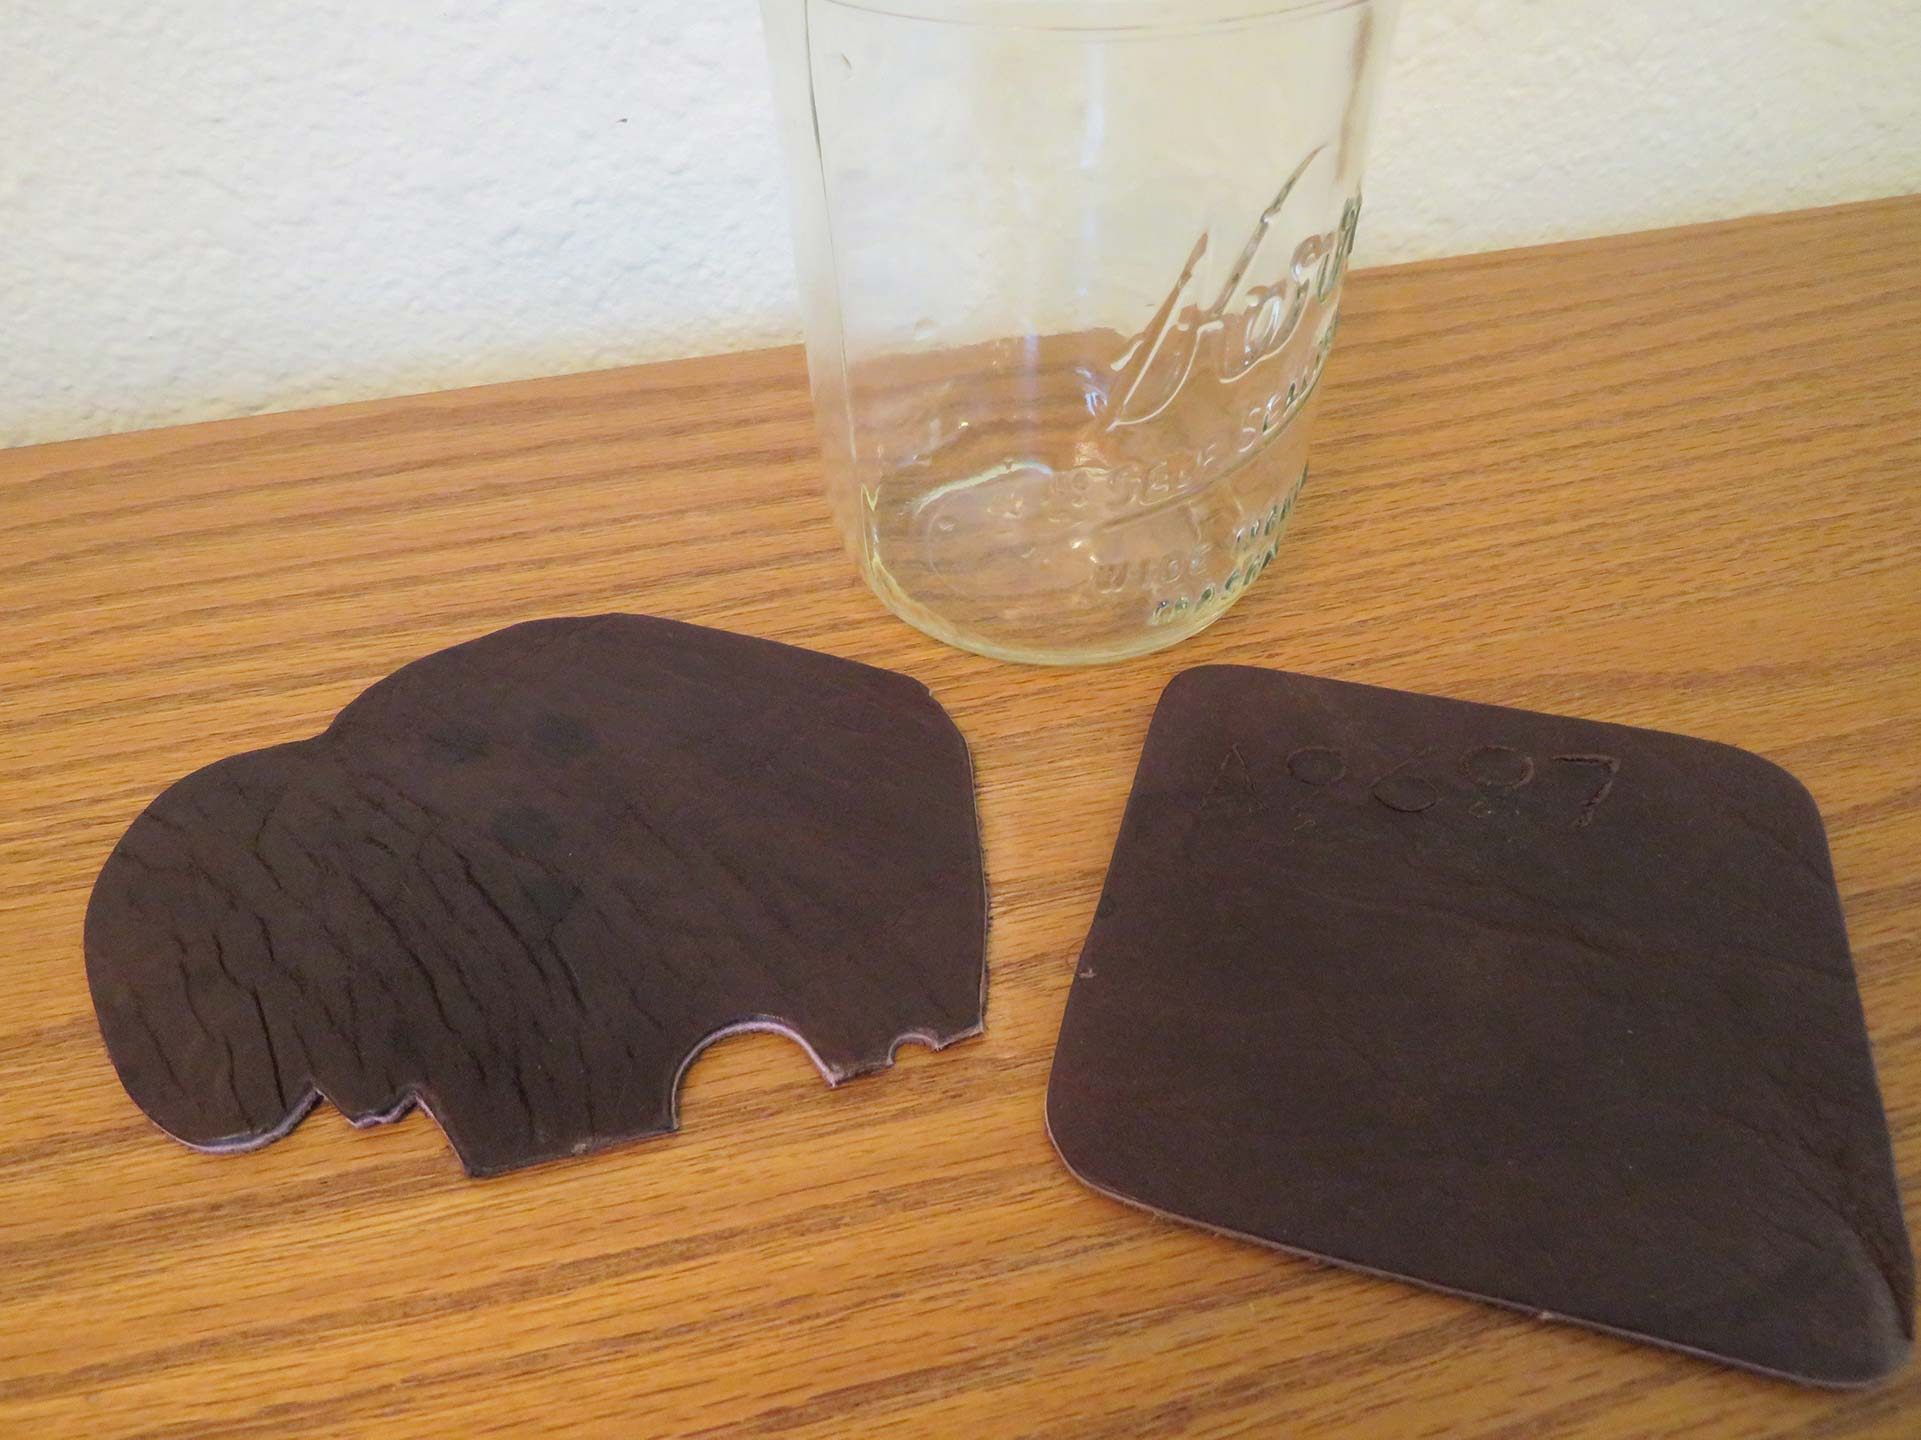 Dried Buffalo Leather Coasters look just like new and worked great